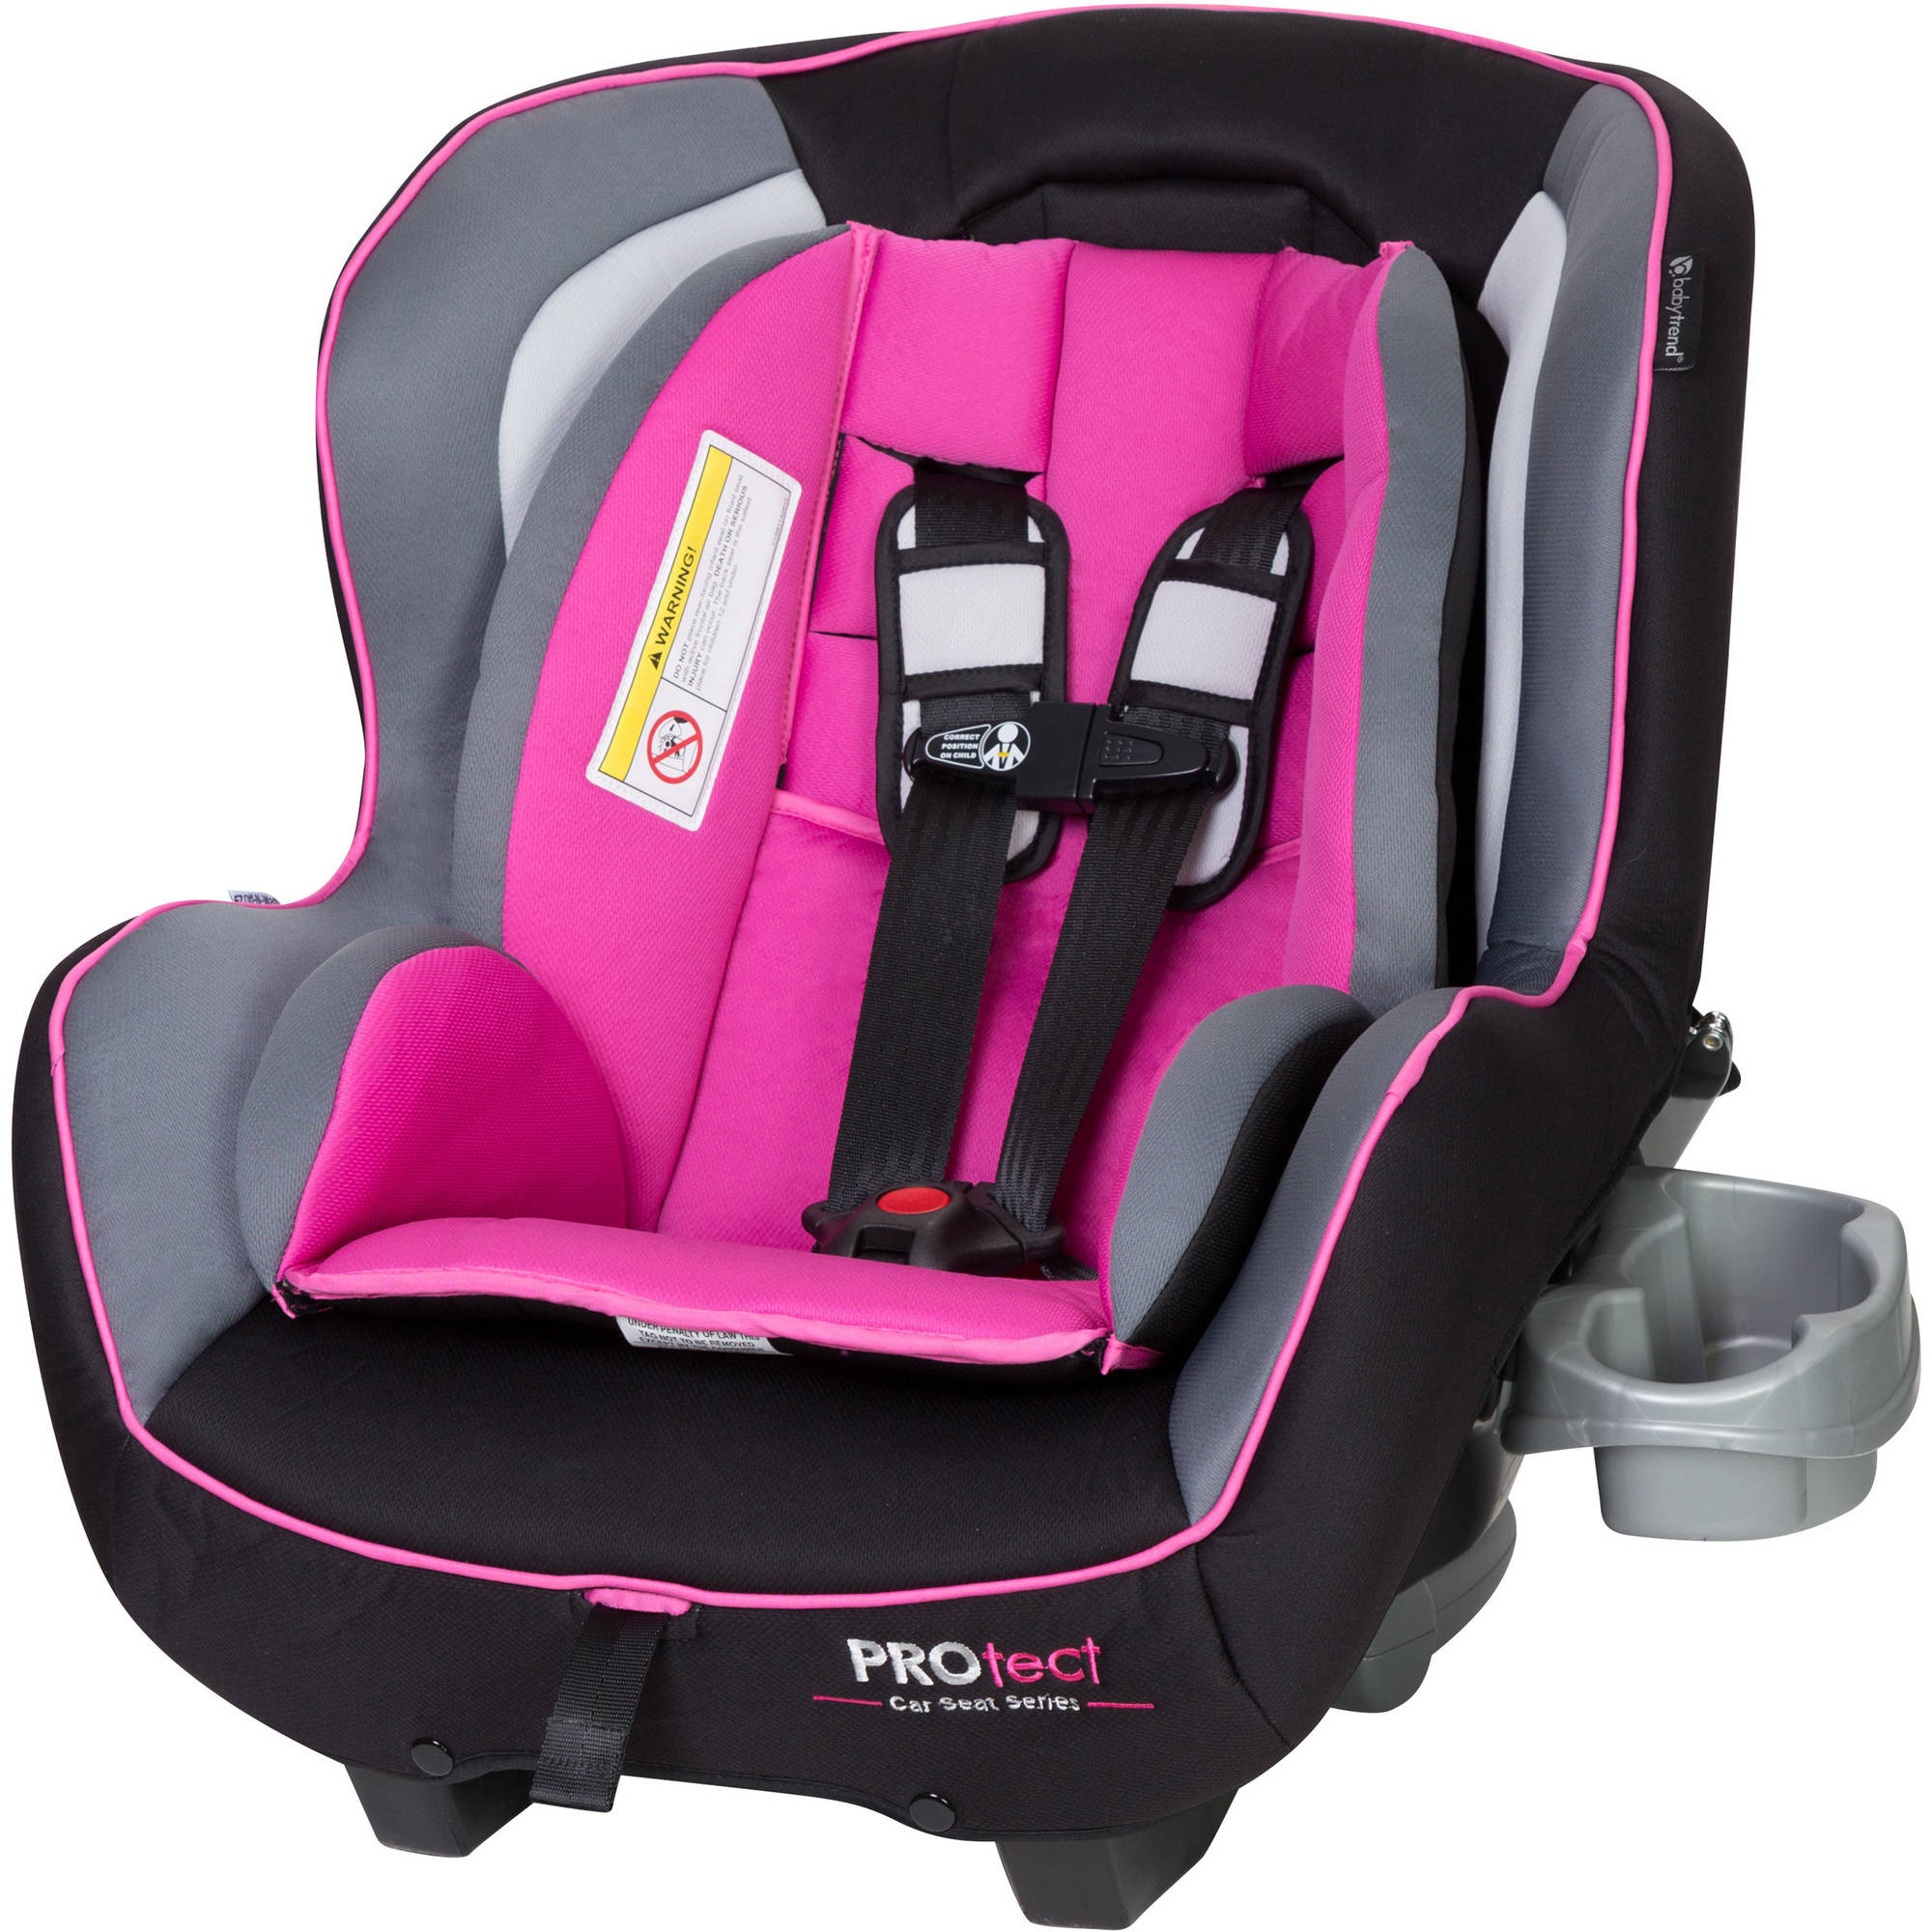 Car Seat Covers For Baby Trend Velcromag